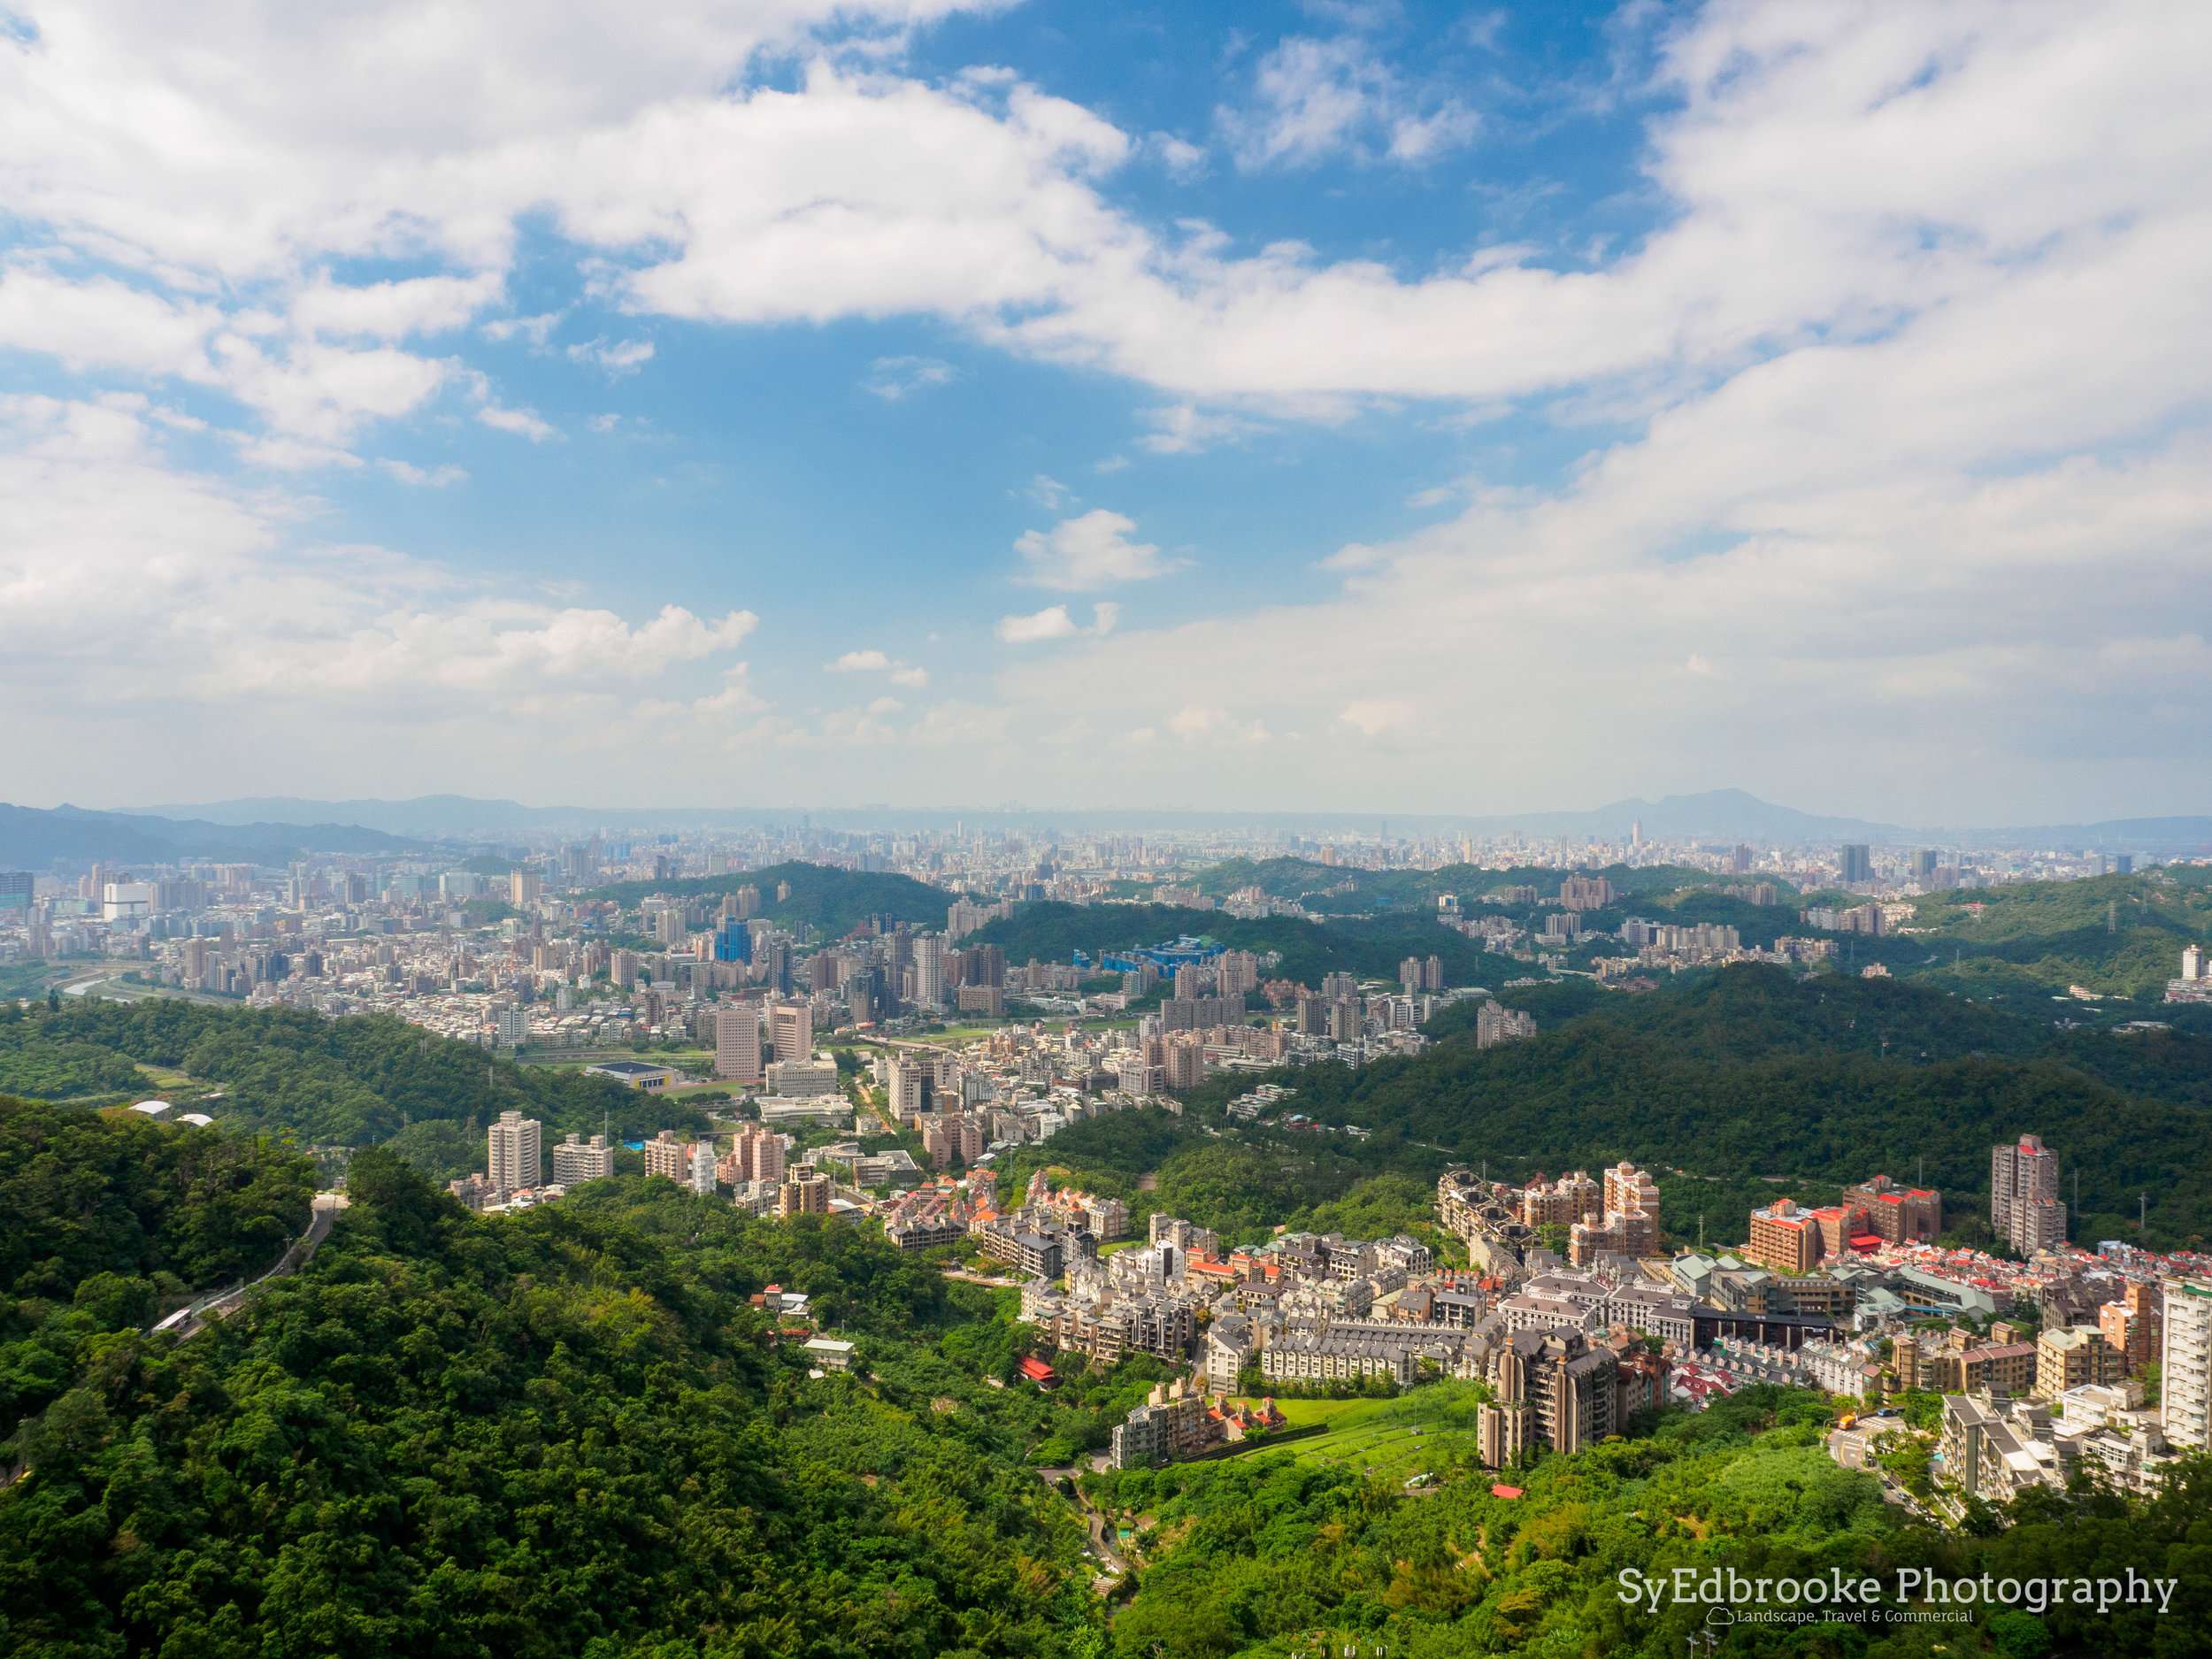 View from the gondola heading up to Maokong. f11, ISO 200, 1/100, 24mm